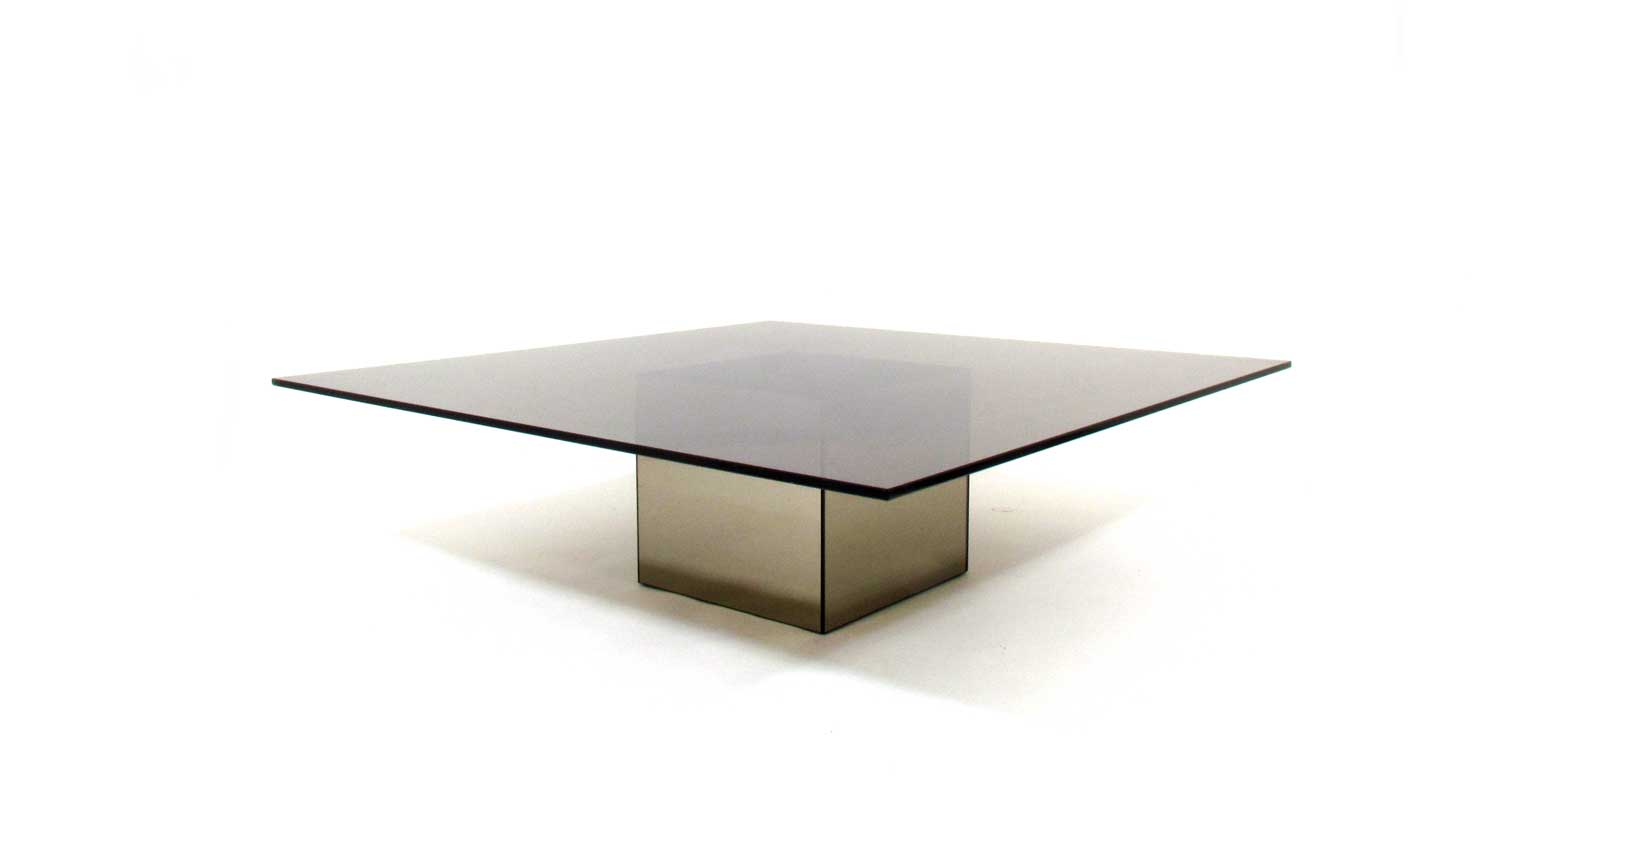 block acerbis nanda vigo vintage design iconicdesign furniture table glass iconic design